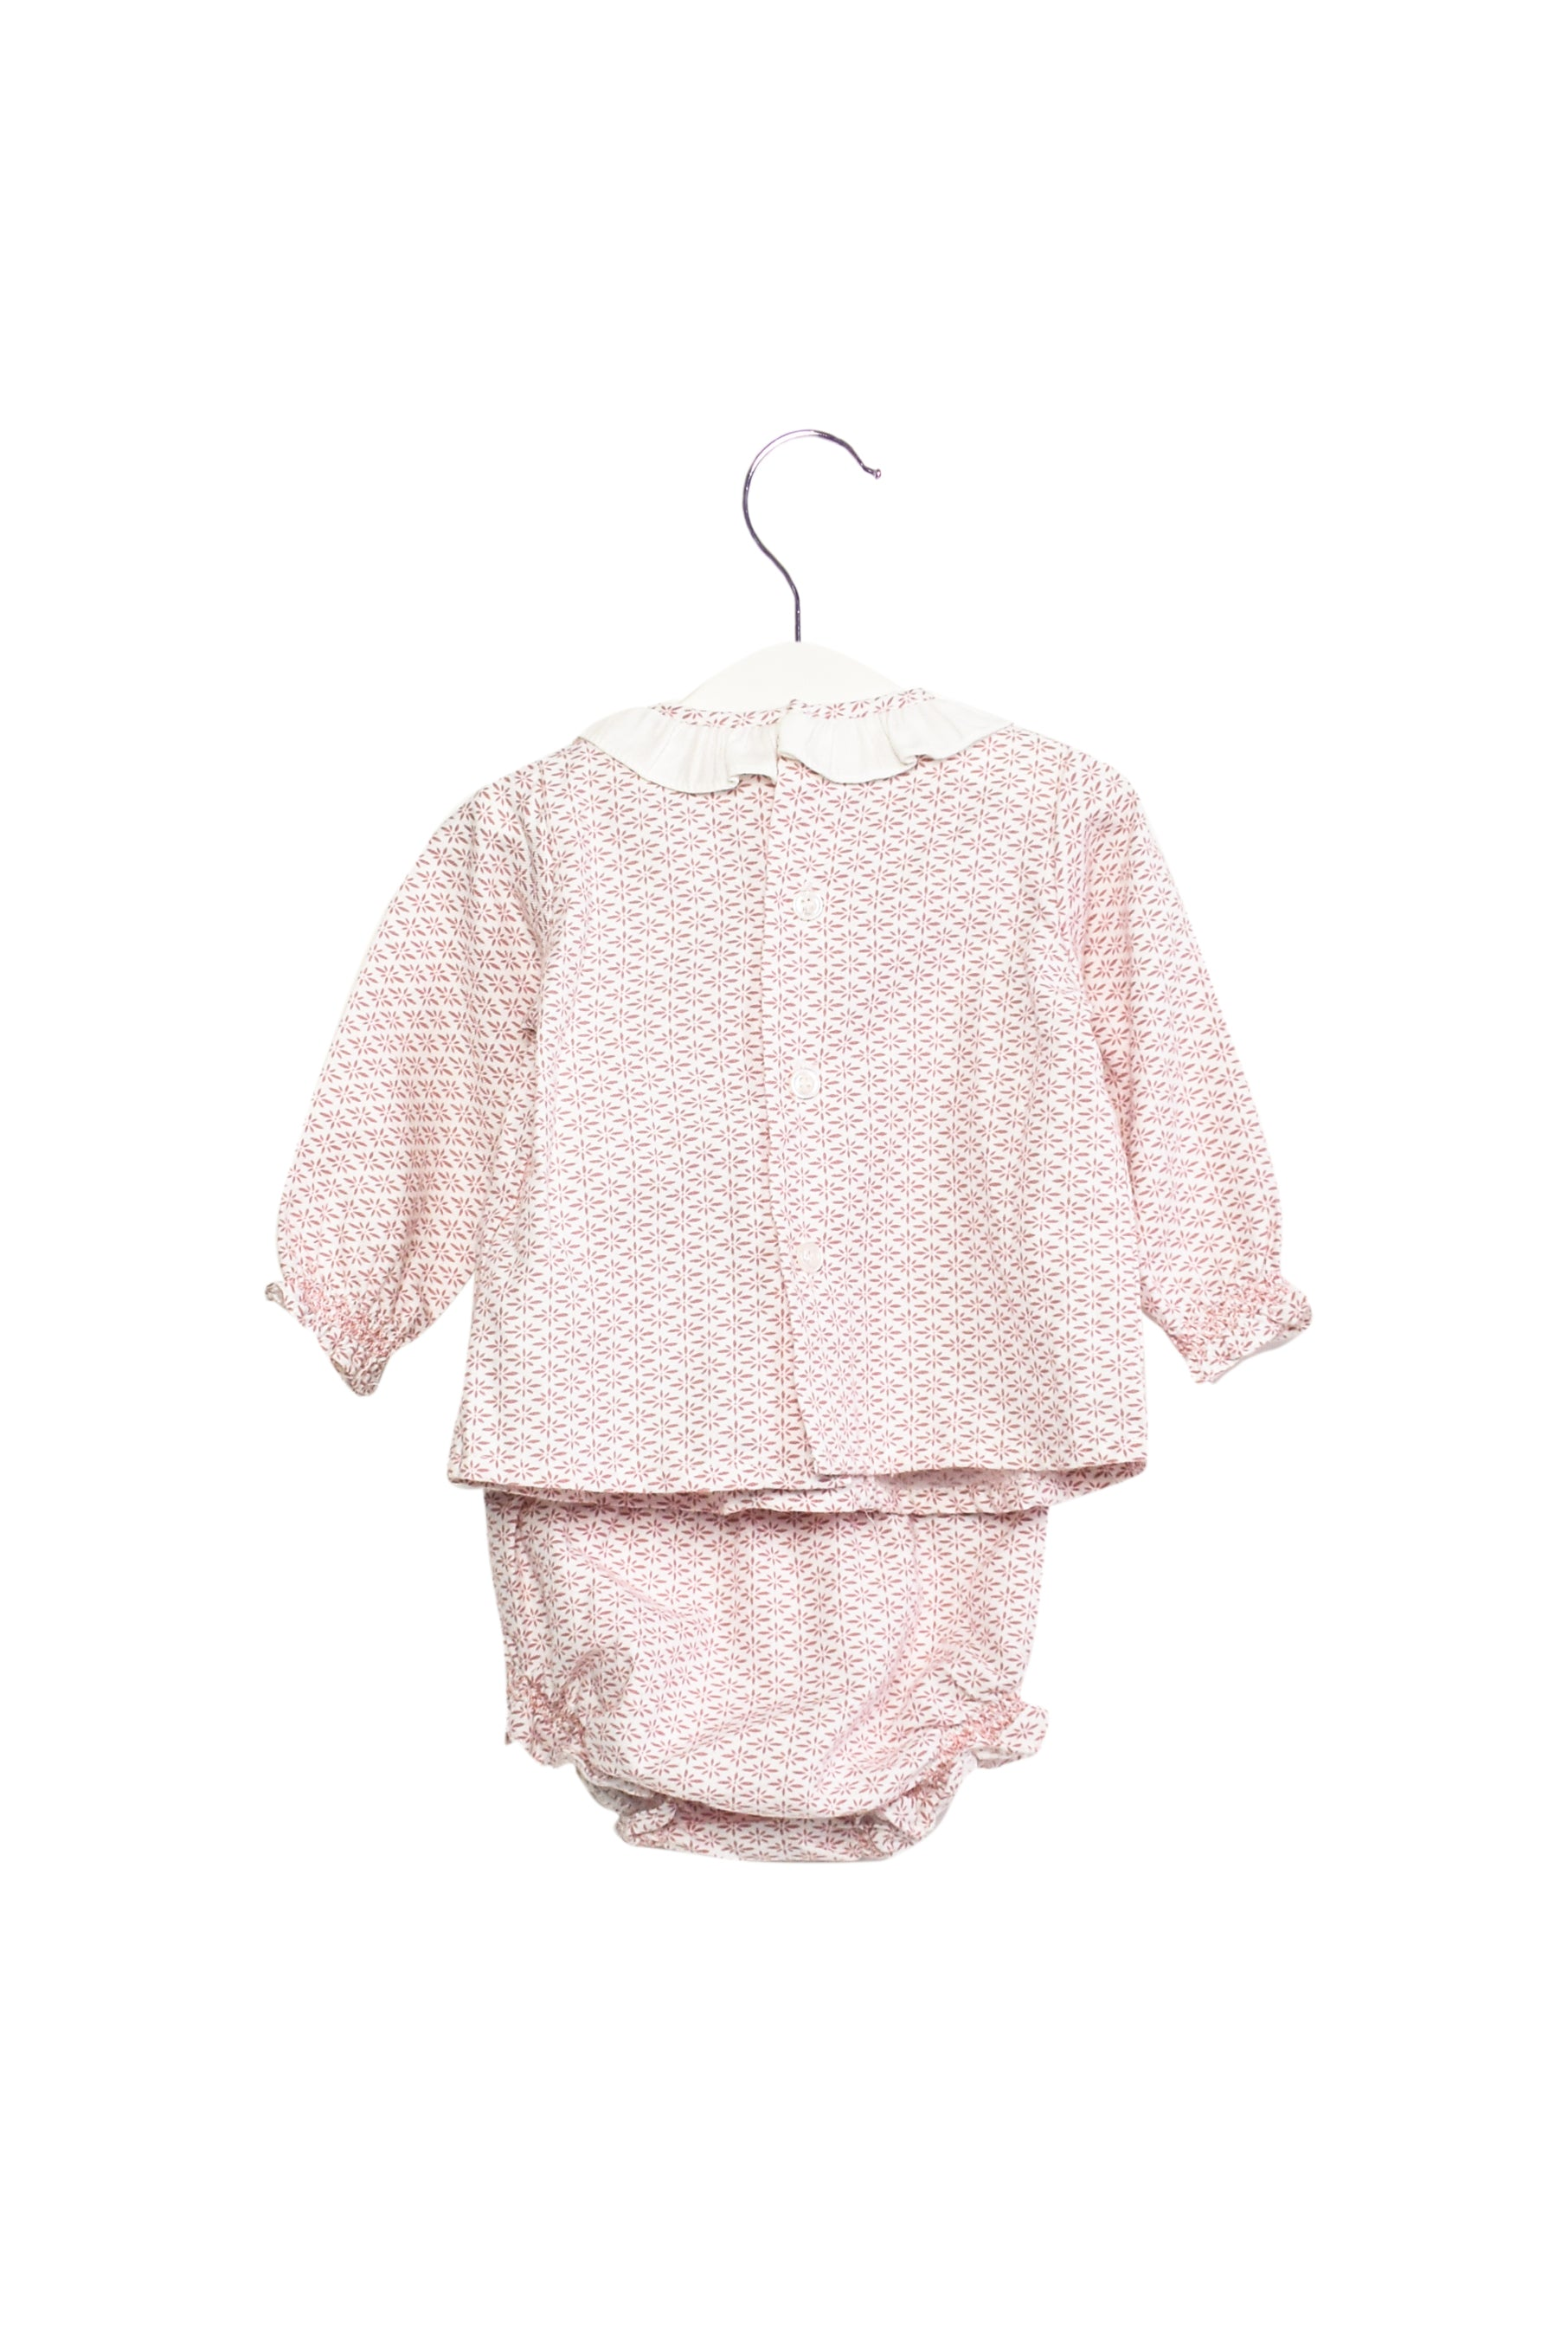 10013997 Dona Carmen Baby ~ Top and Bloomer 6M at Retykle